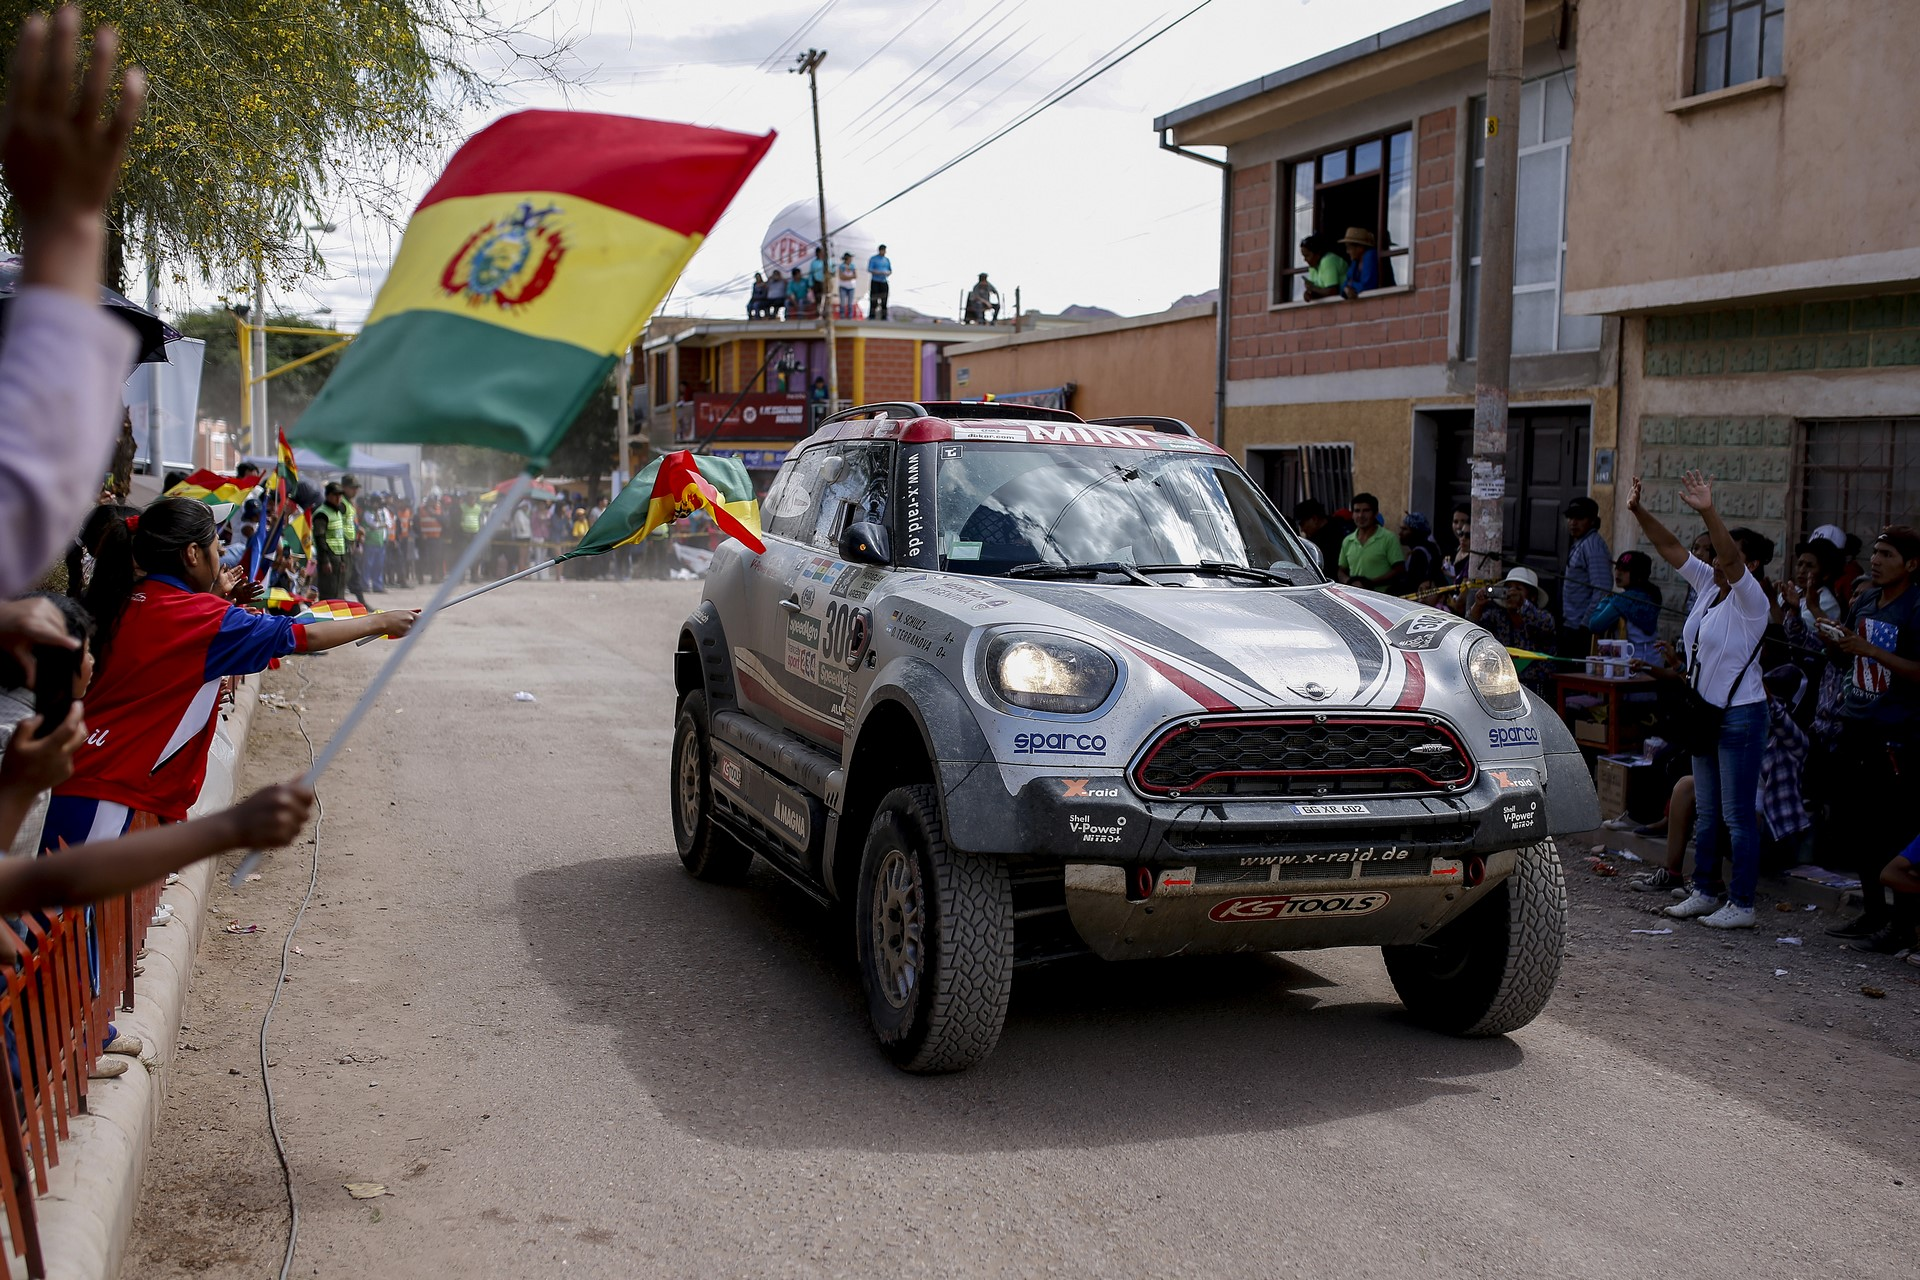 308 TERRANOVA ORLANDO (arg) SCHULZ ANDREAS (deu) MINI X-RAID MINI JOHN COOPER WORKS RALLY TEAM  action during the Dakar 2017 Paraguay Bolivia Argentina , Etape 4 - Stage 4,  San Salvador de jujuy - Tupiza ,  January 5 - Photo Benjamin Cremel / DPPI